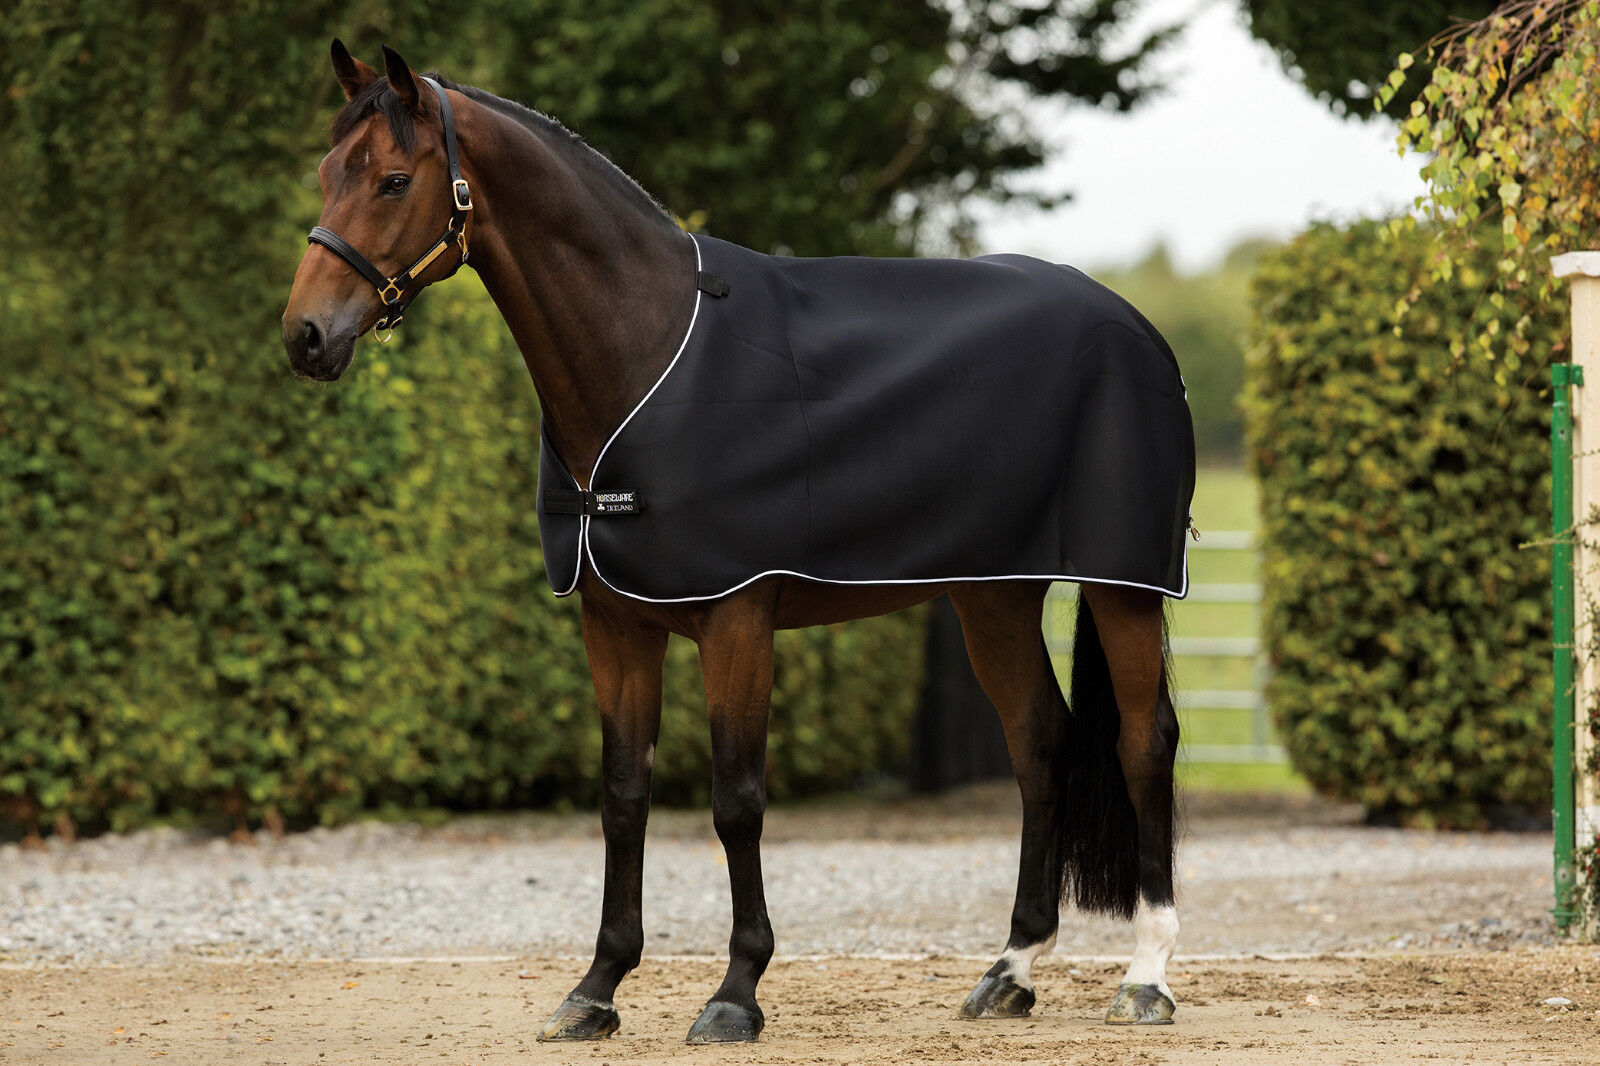 Horseware Rambo AIRMAX 150g Under LINER Breathable Breathable Breathable Technical Airmesh Cooler Rug 909bb8